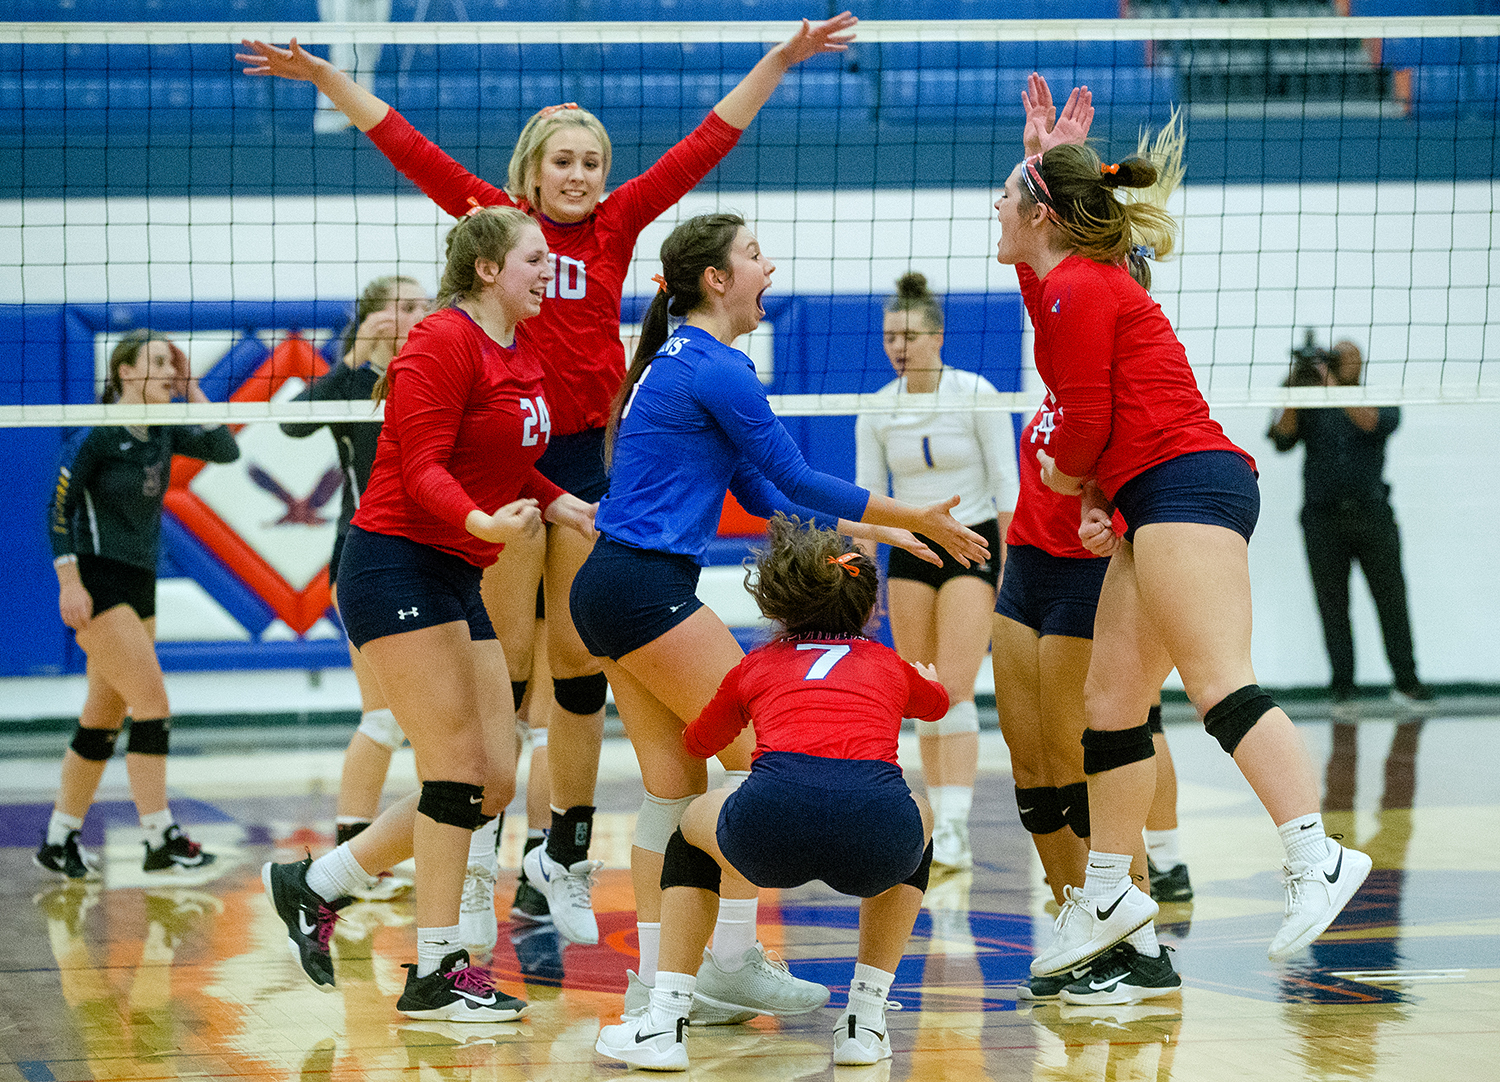 The Pleasant Plains Cardinals celebrate after defeating  Maroa-Forsyth  in two games during the IHSA Class 2A Riverton Sectional title game at Riverton High School Wednesday, October 31, 2018. [Ted Schurter/The State Journal-Register]